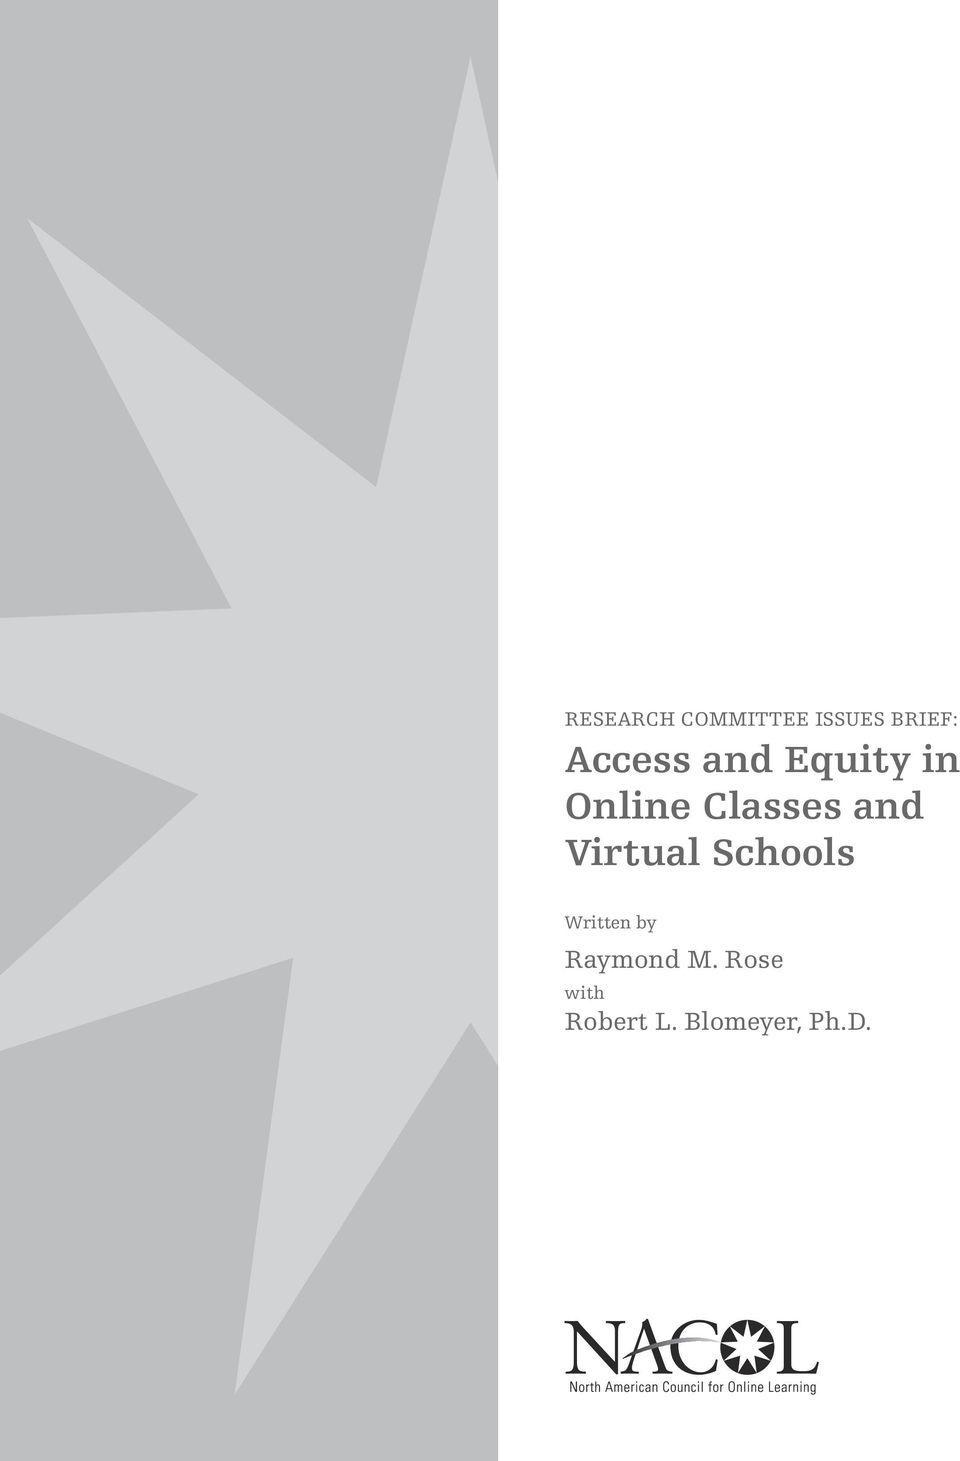 and Virtual Schools Written by